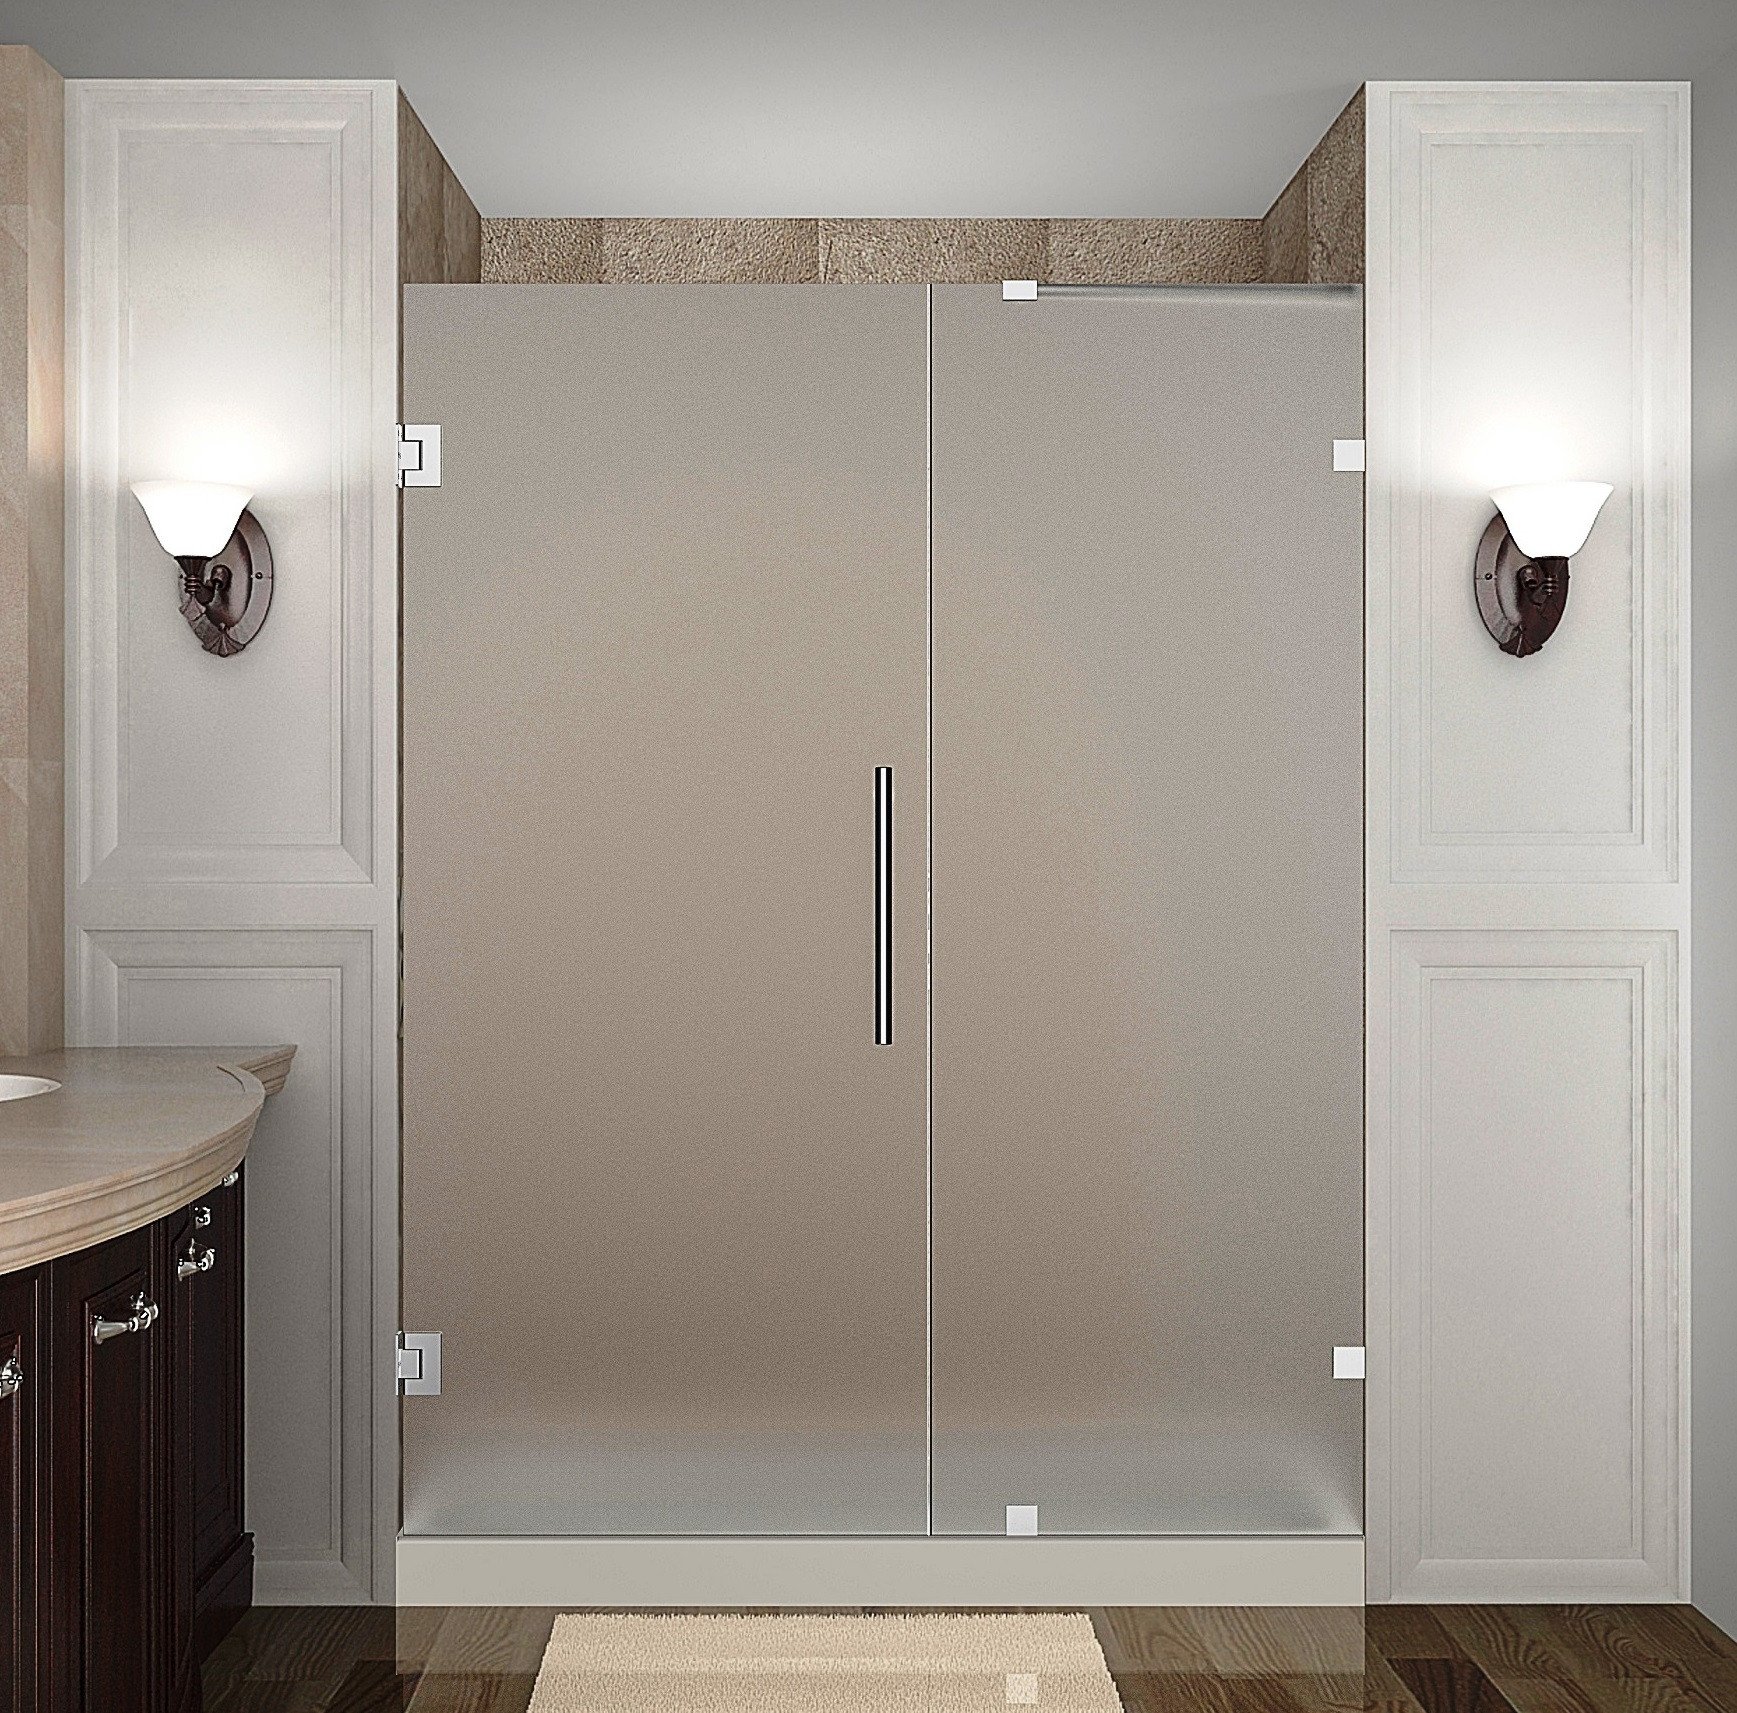 Aston Global SDR985F-CH-65-10 Completely Frameless Hinged Frosted Glass Shower Door In Chrome